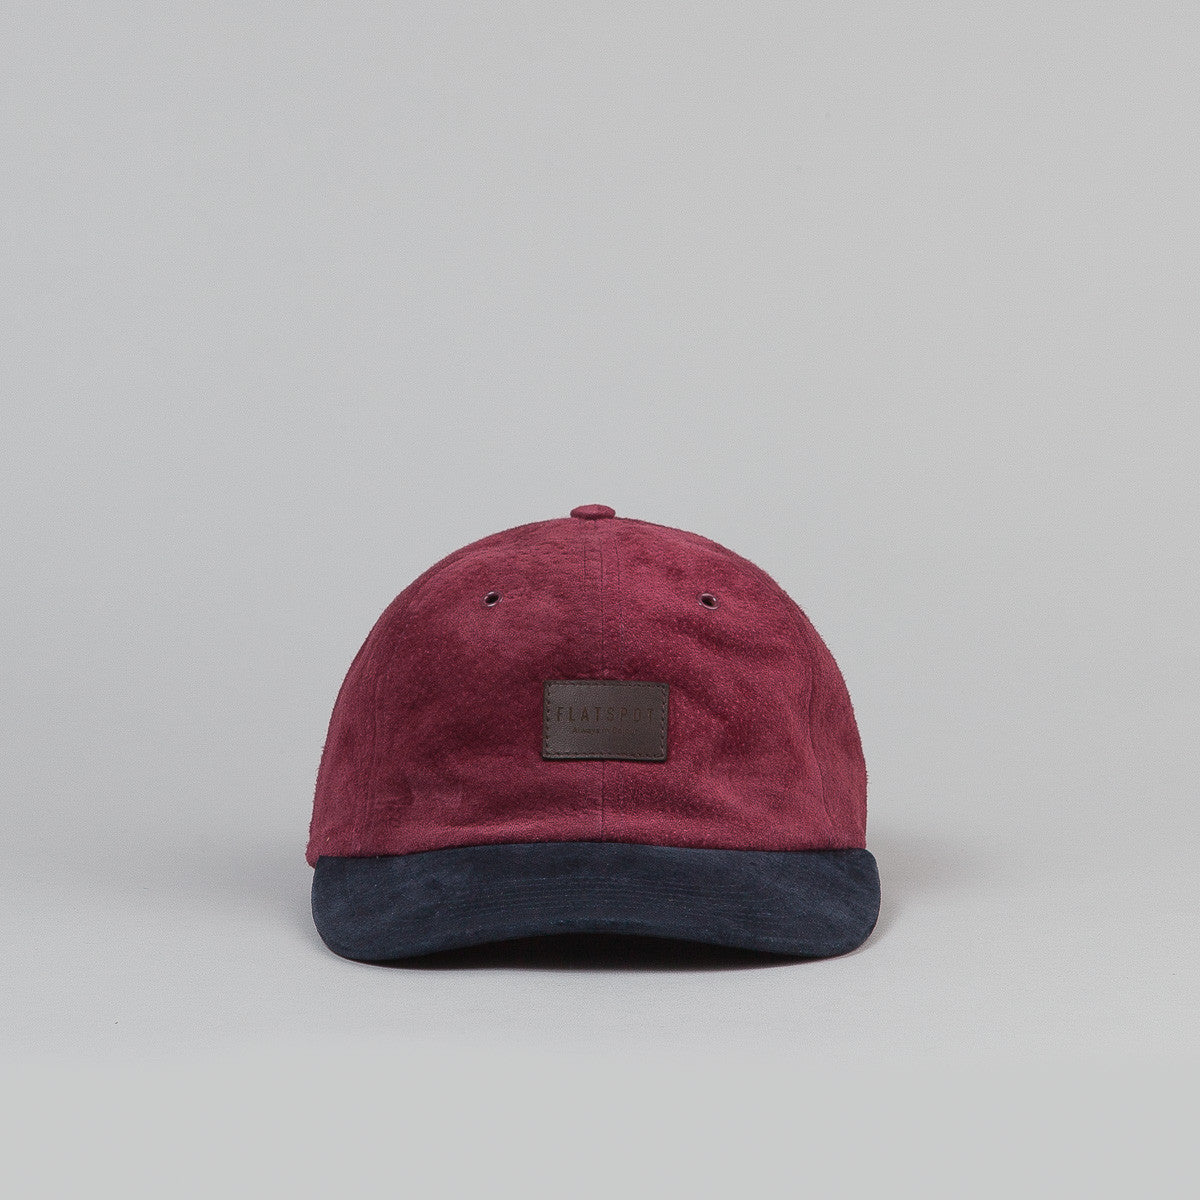 Flatspot Suede 6 Panel Cap Wine / Navy